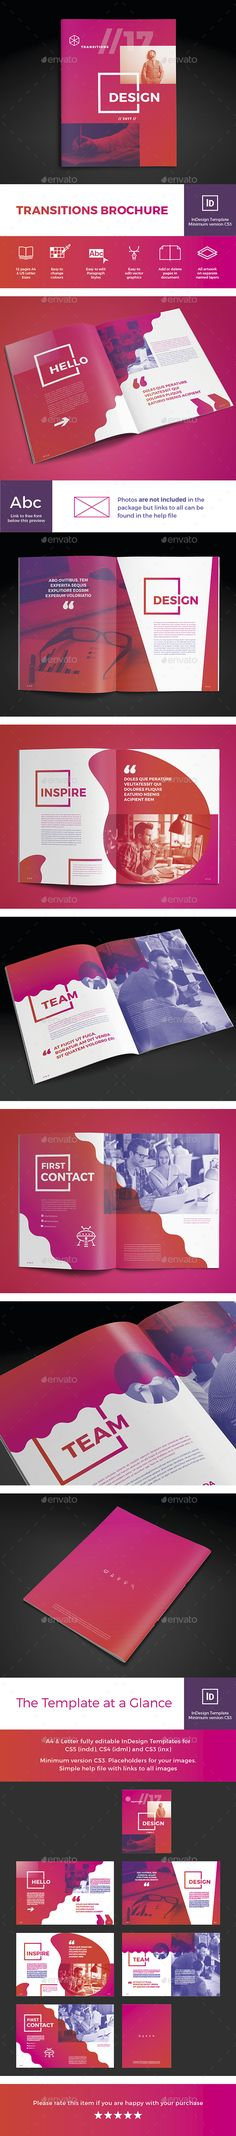 Transitions Brochure InDesign INDD tablet team Downl - Fiverr Outsource - Outsource your work on Fiverr and save your time. Brochure Indesign, Design Brochure, Booklet Design, Brochure Layout, Graphic Design Layouts, Layout Design, Brochure Ideas, Creative Brochure, Brochure Template